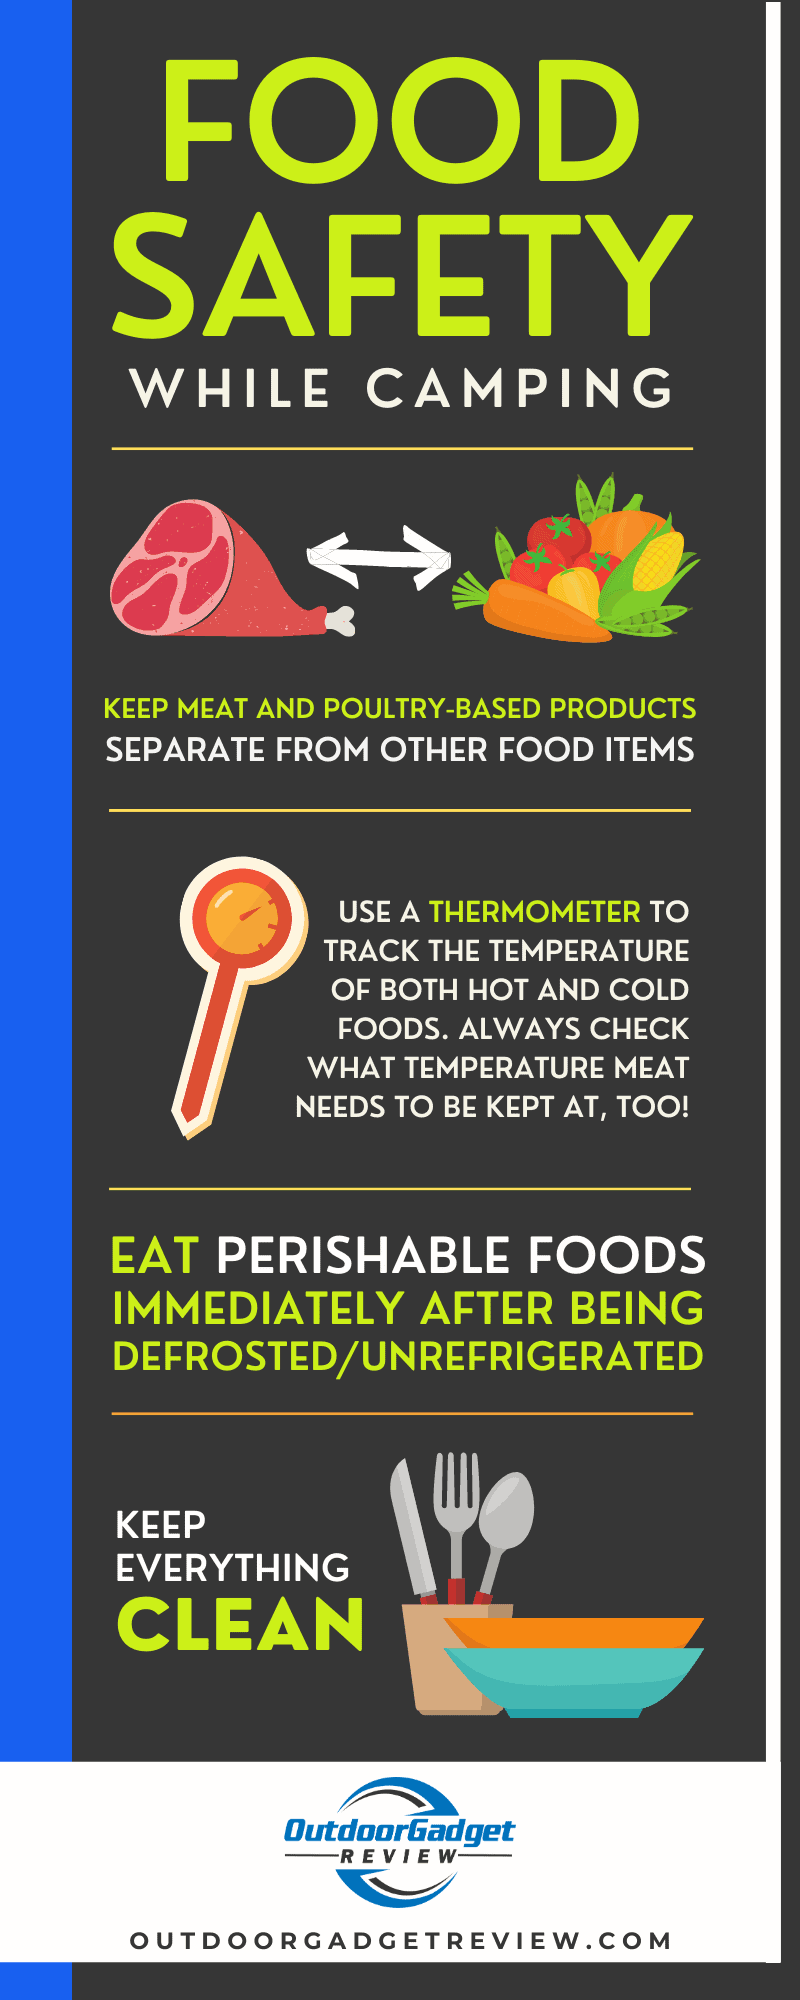 Food Safety Tips While Camping